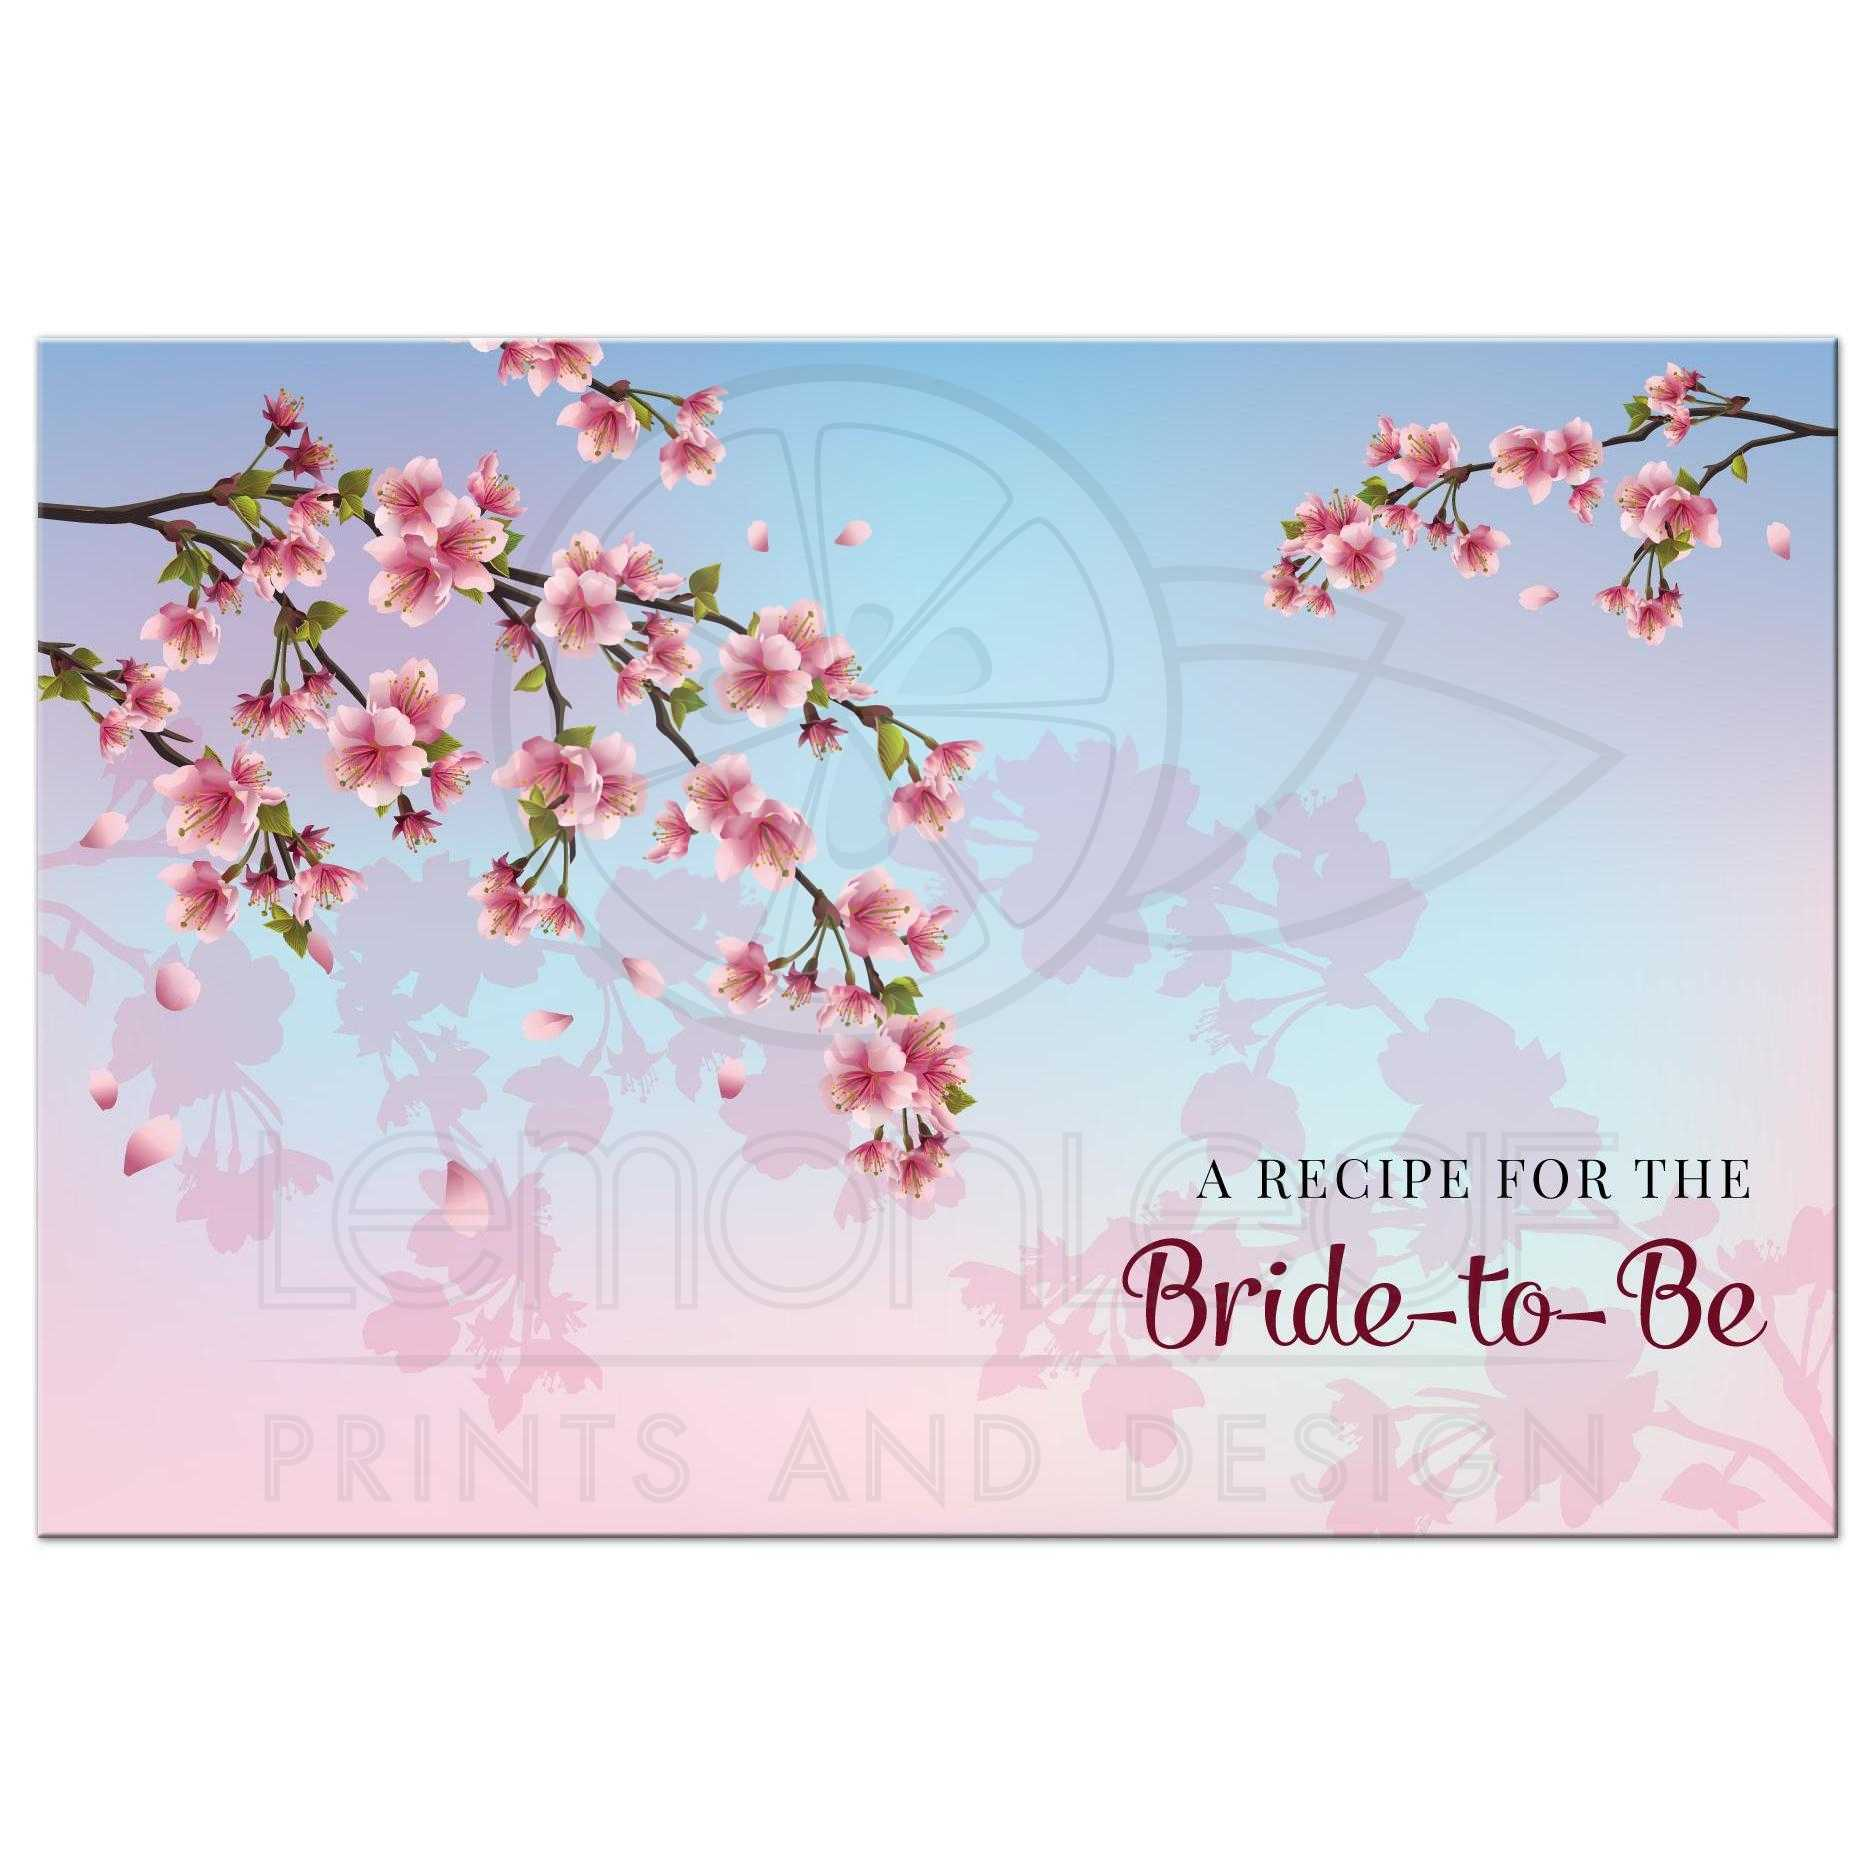 Wedding Gift Recipe Cards : Home / Gifts / Recipe Cards / Recipe Card - Cherry Blossom Ombre ...